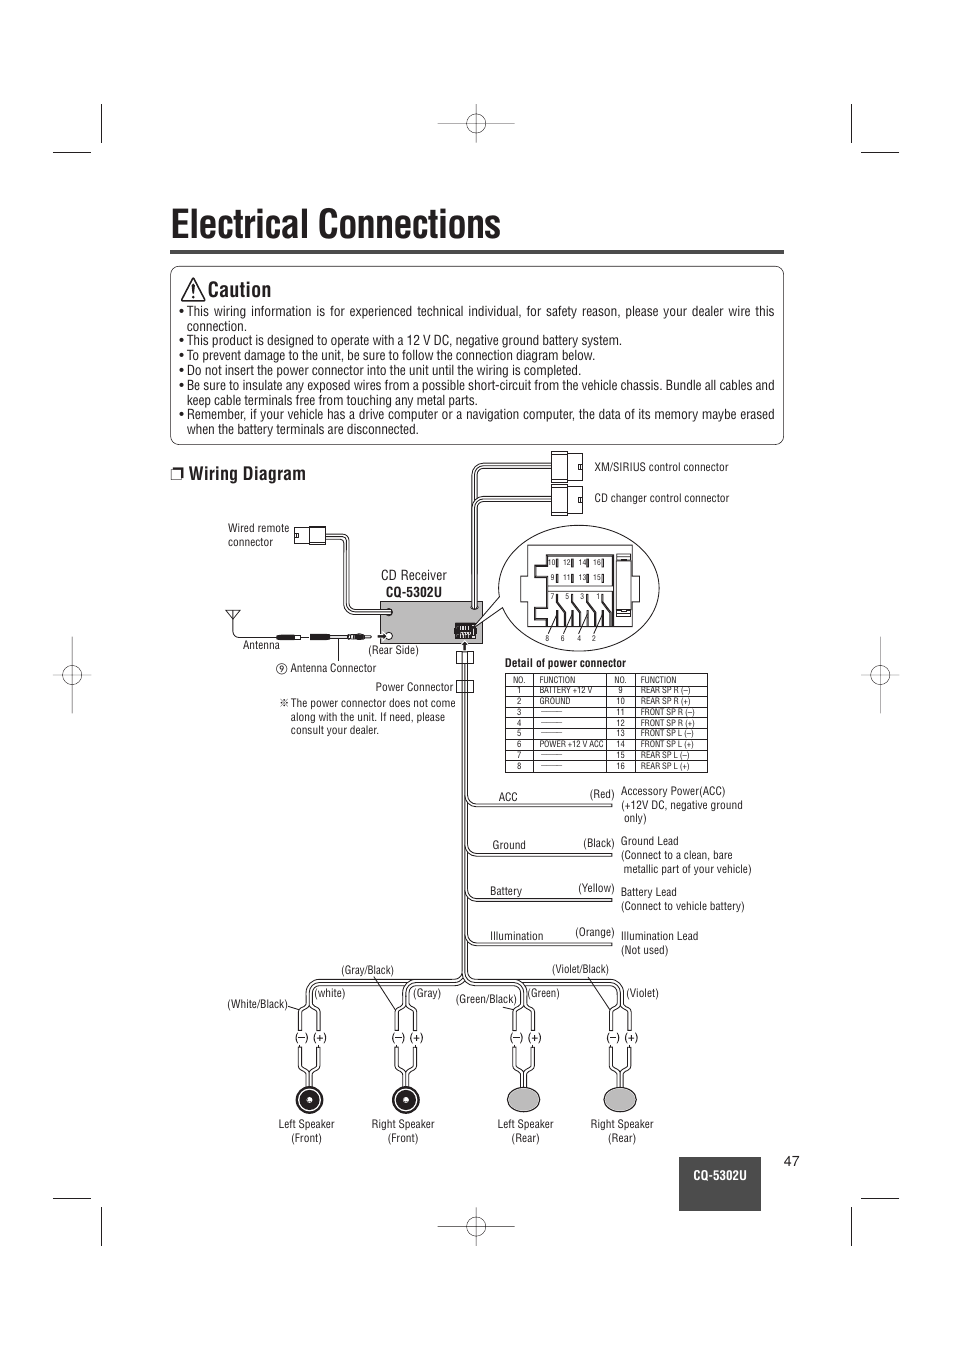 Electrical connections, Caution, Wiring diagram | Panasonic CQ-5302U User  Manual | Page